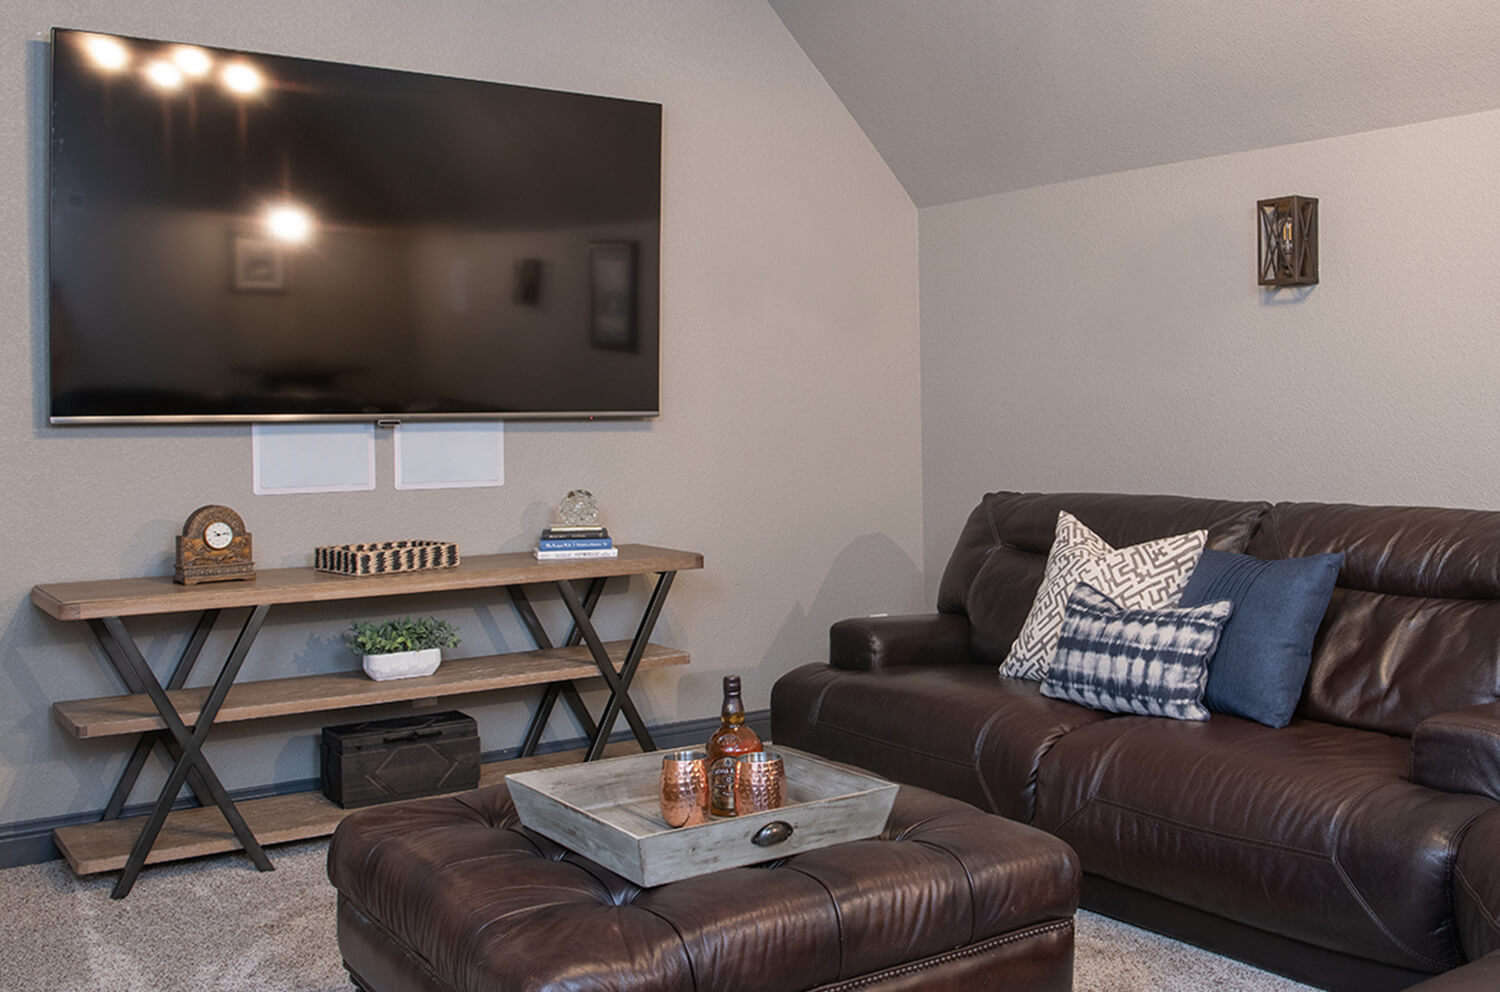 A whole home furnishings project in Coppell, Texas